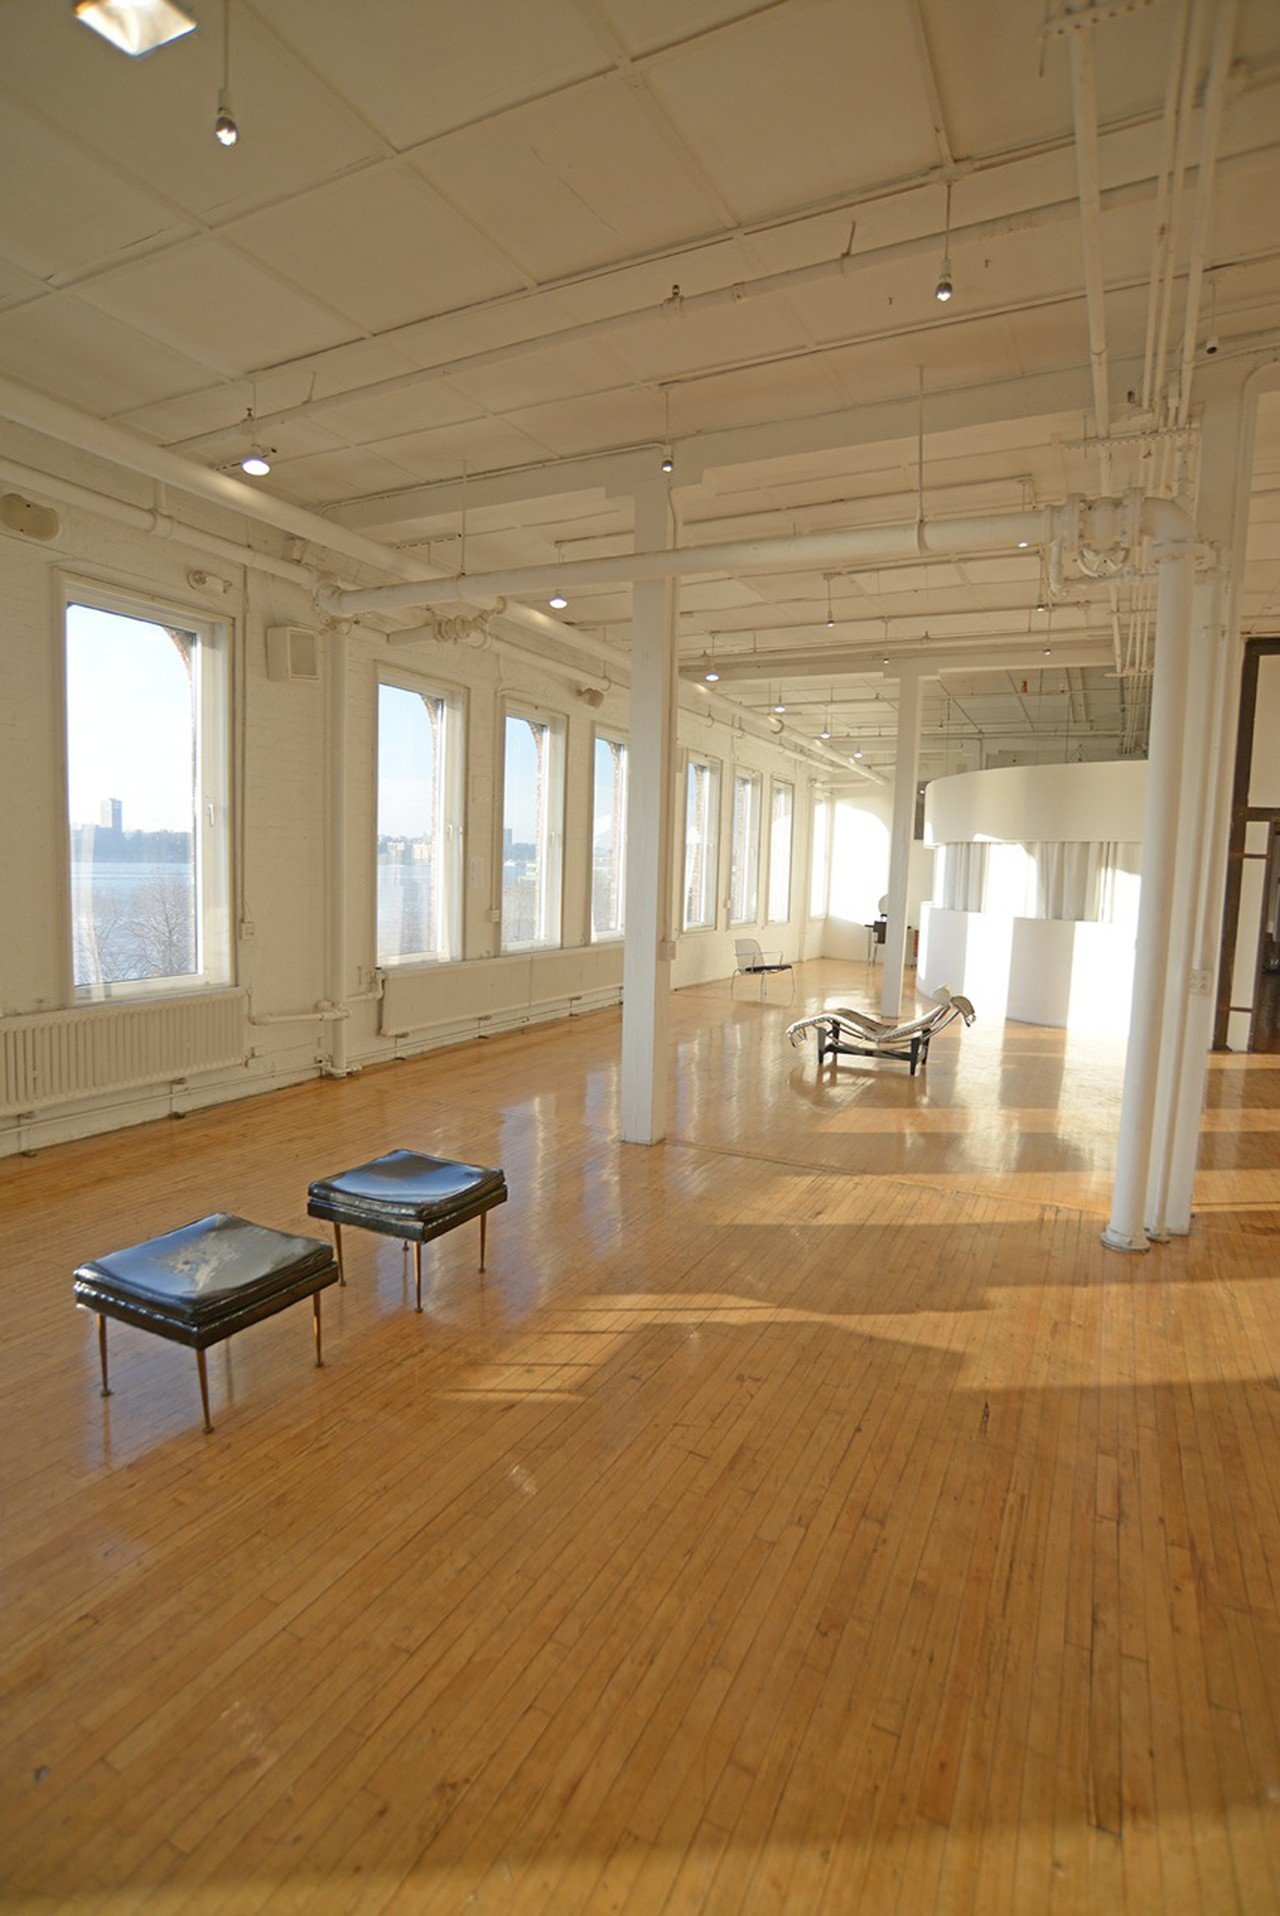 NYC corporate event venues Galerie Michelson Studio image 2